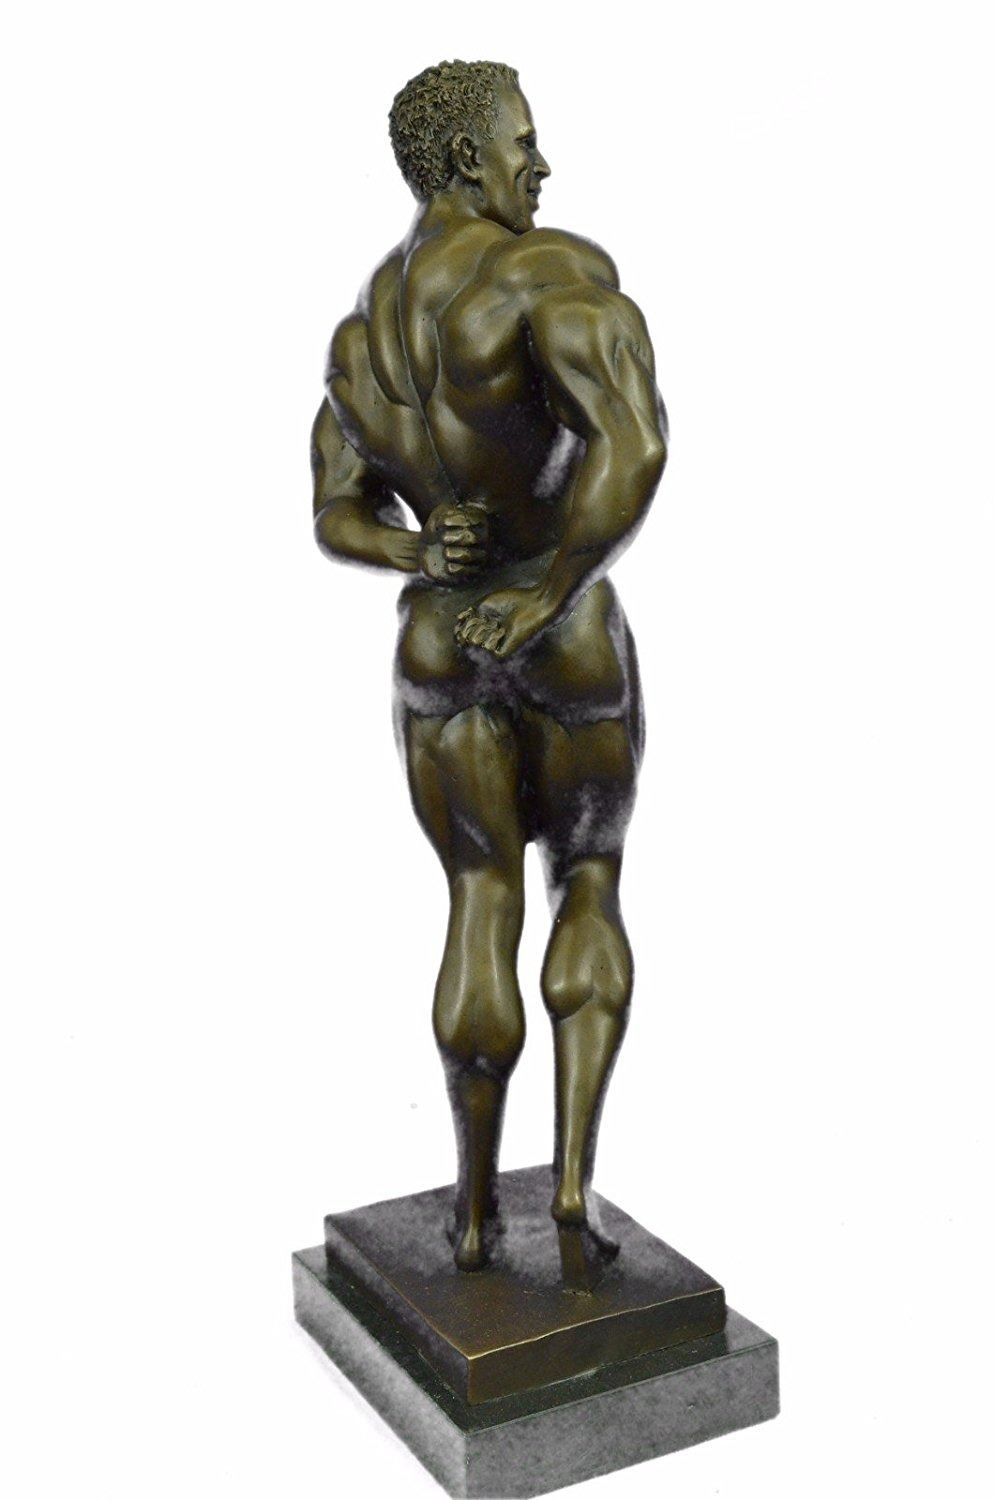 COLLECTABLE NUDE LOVING COUPLE BRONZE STATUE HOT CAST